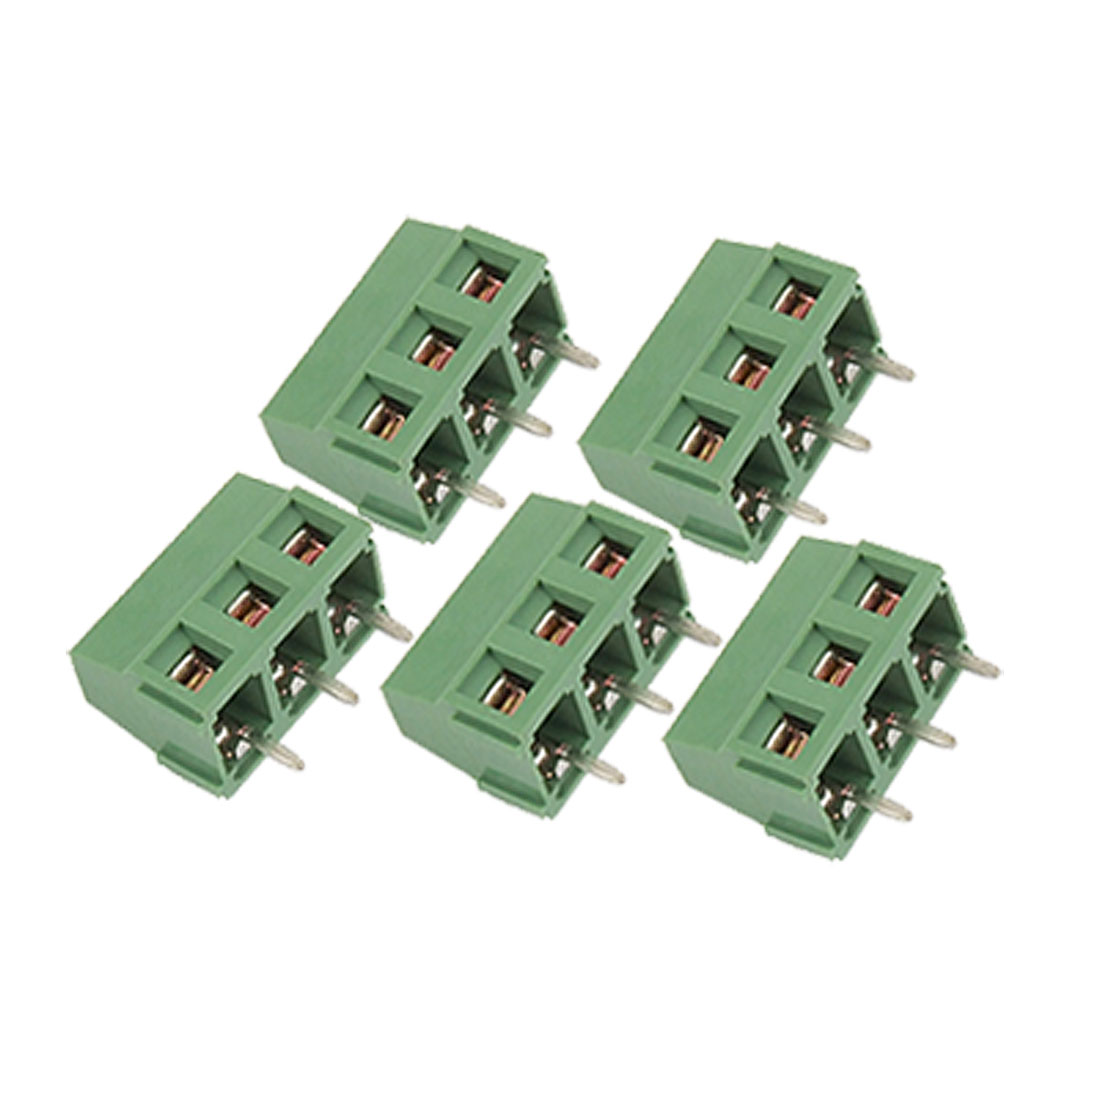 5 Pcs 5mm Pitch 3P Screw Terminal Block PCB Connector 300V 10A